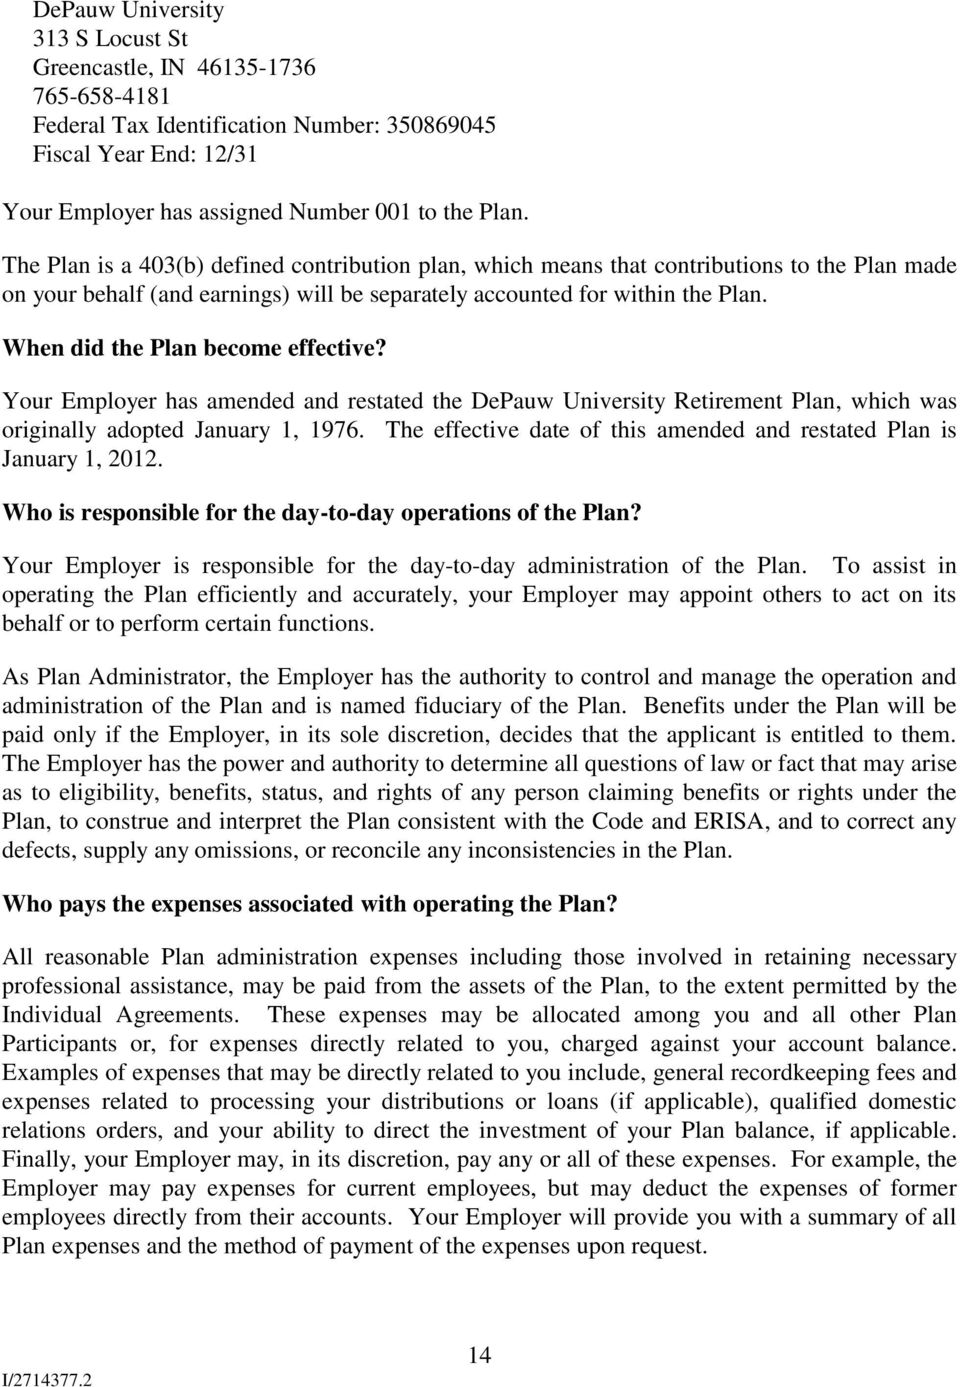 When did the Plan become effective? Your Employer has amended and restated the DePauw University Retirement Plan, which was originally adopted January 1, 1976.